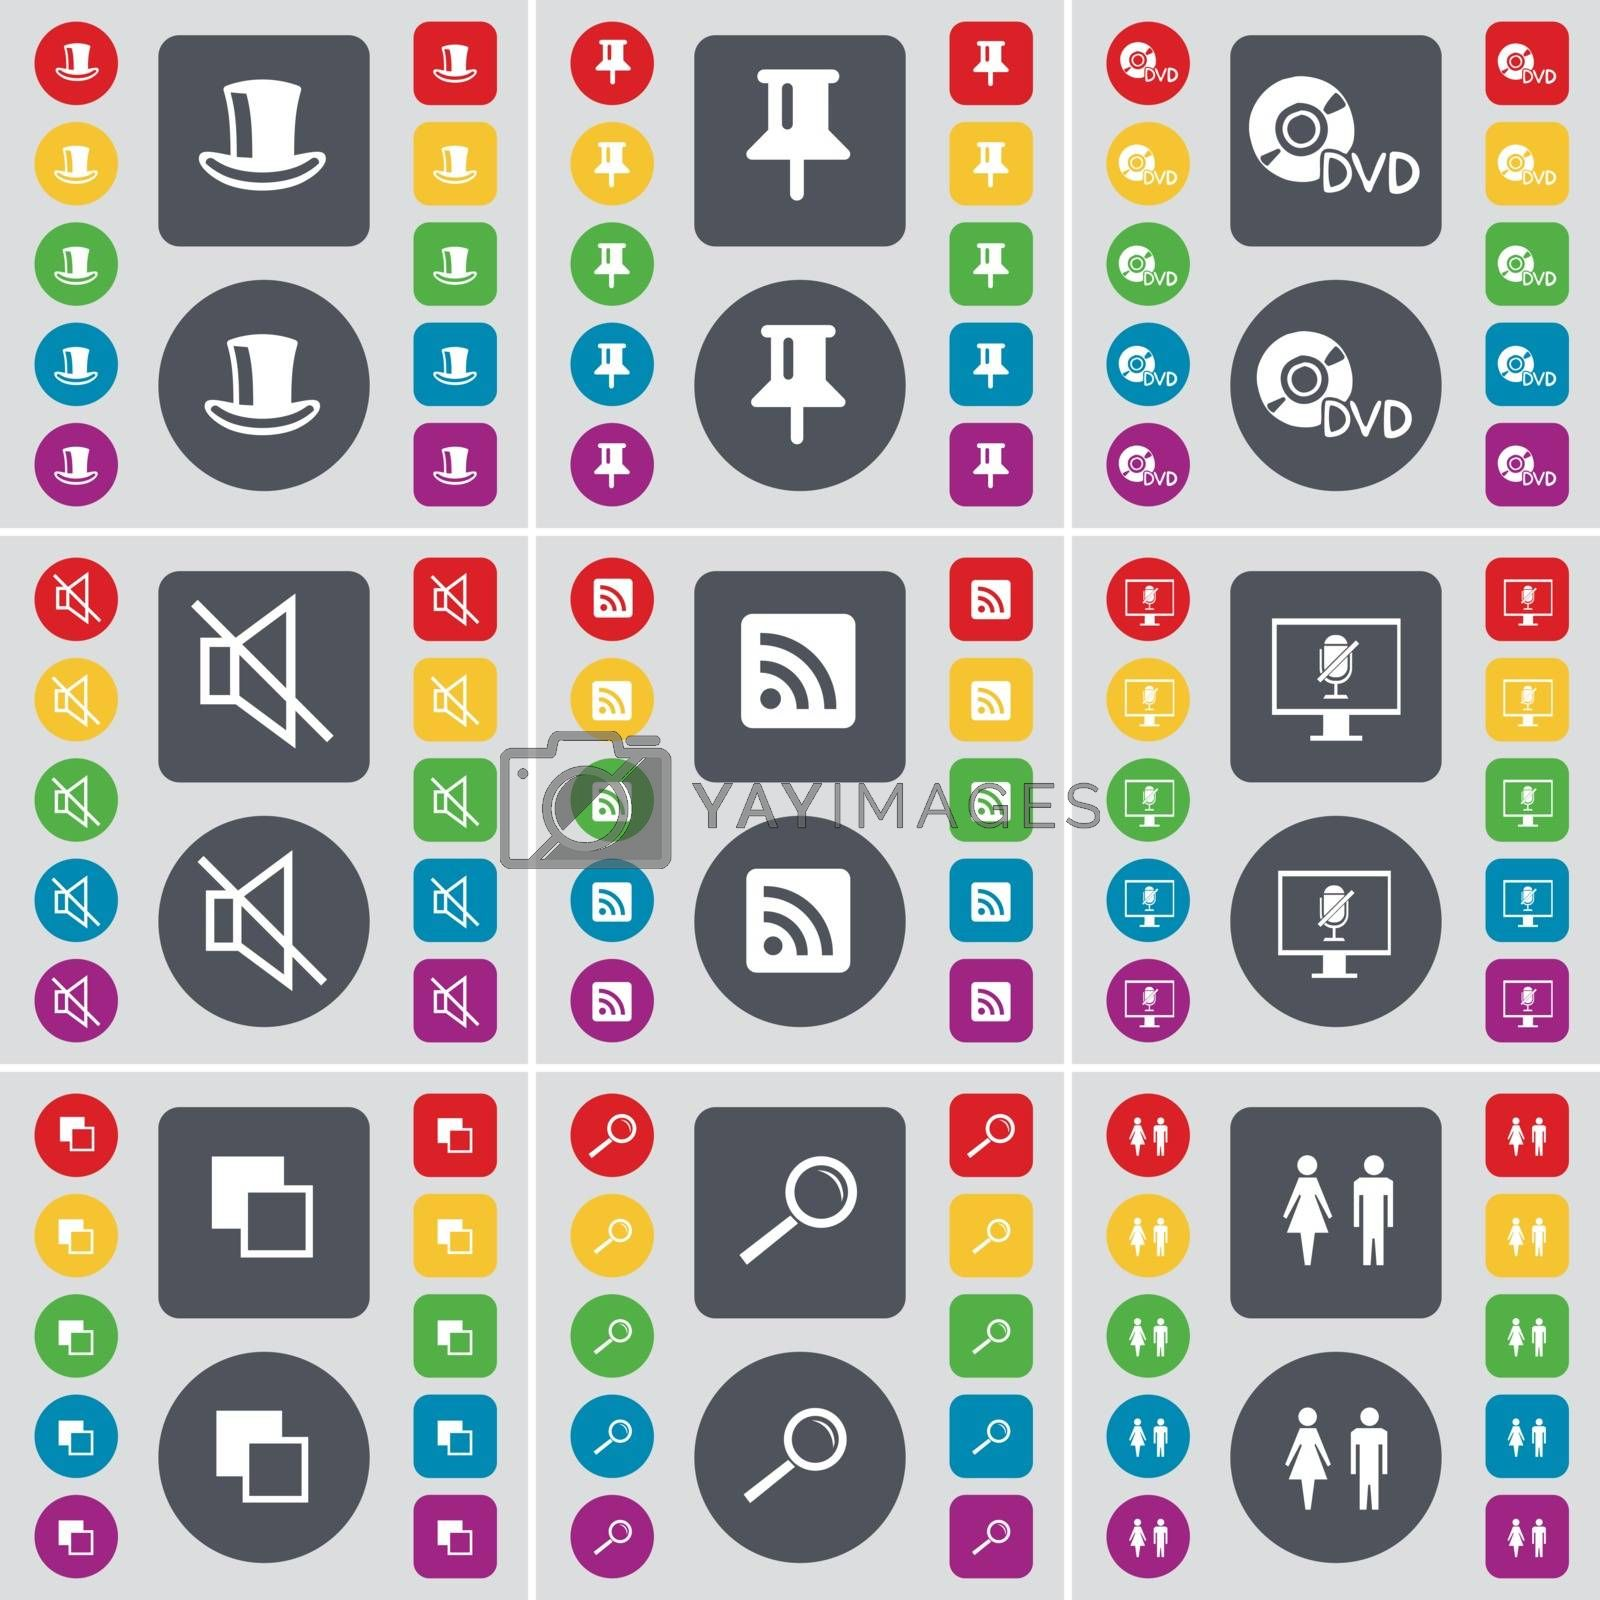 Royalty free image of Silk hat, Pin, DVD, Mute, RSS, Monitor, Copy, Magnifying glass, Silhouette icon symbol. A large set of flat, colored buttons for your design. Vector by serhii_lohvyniuk